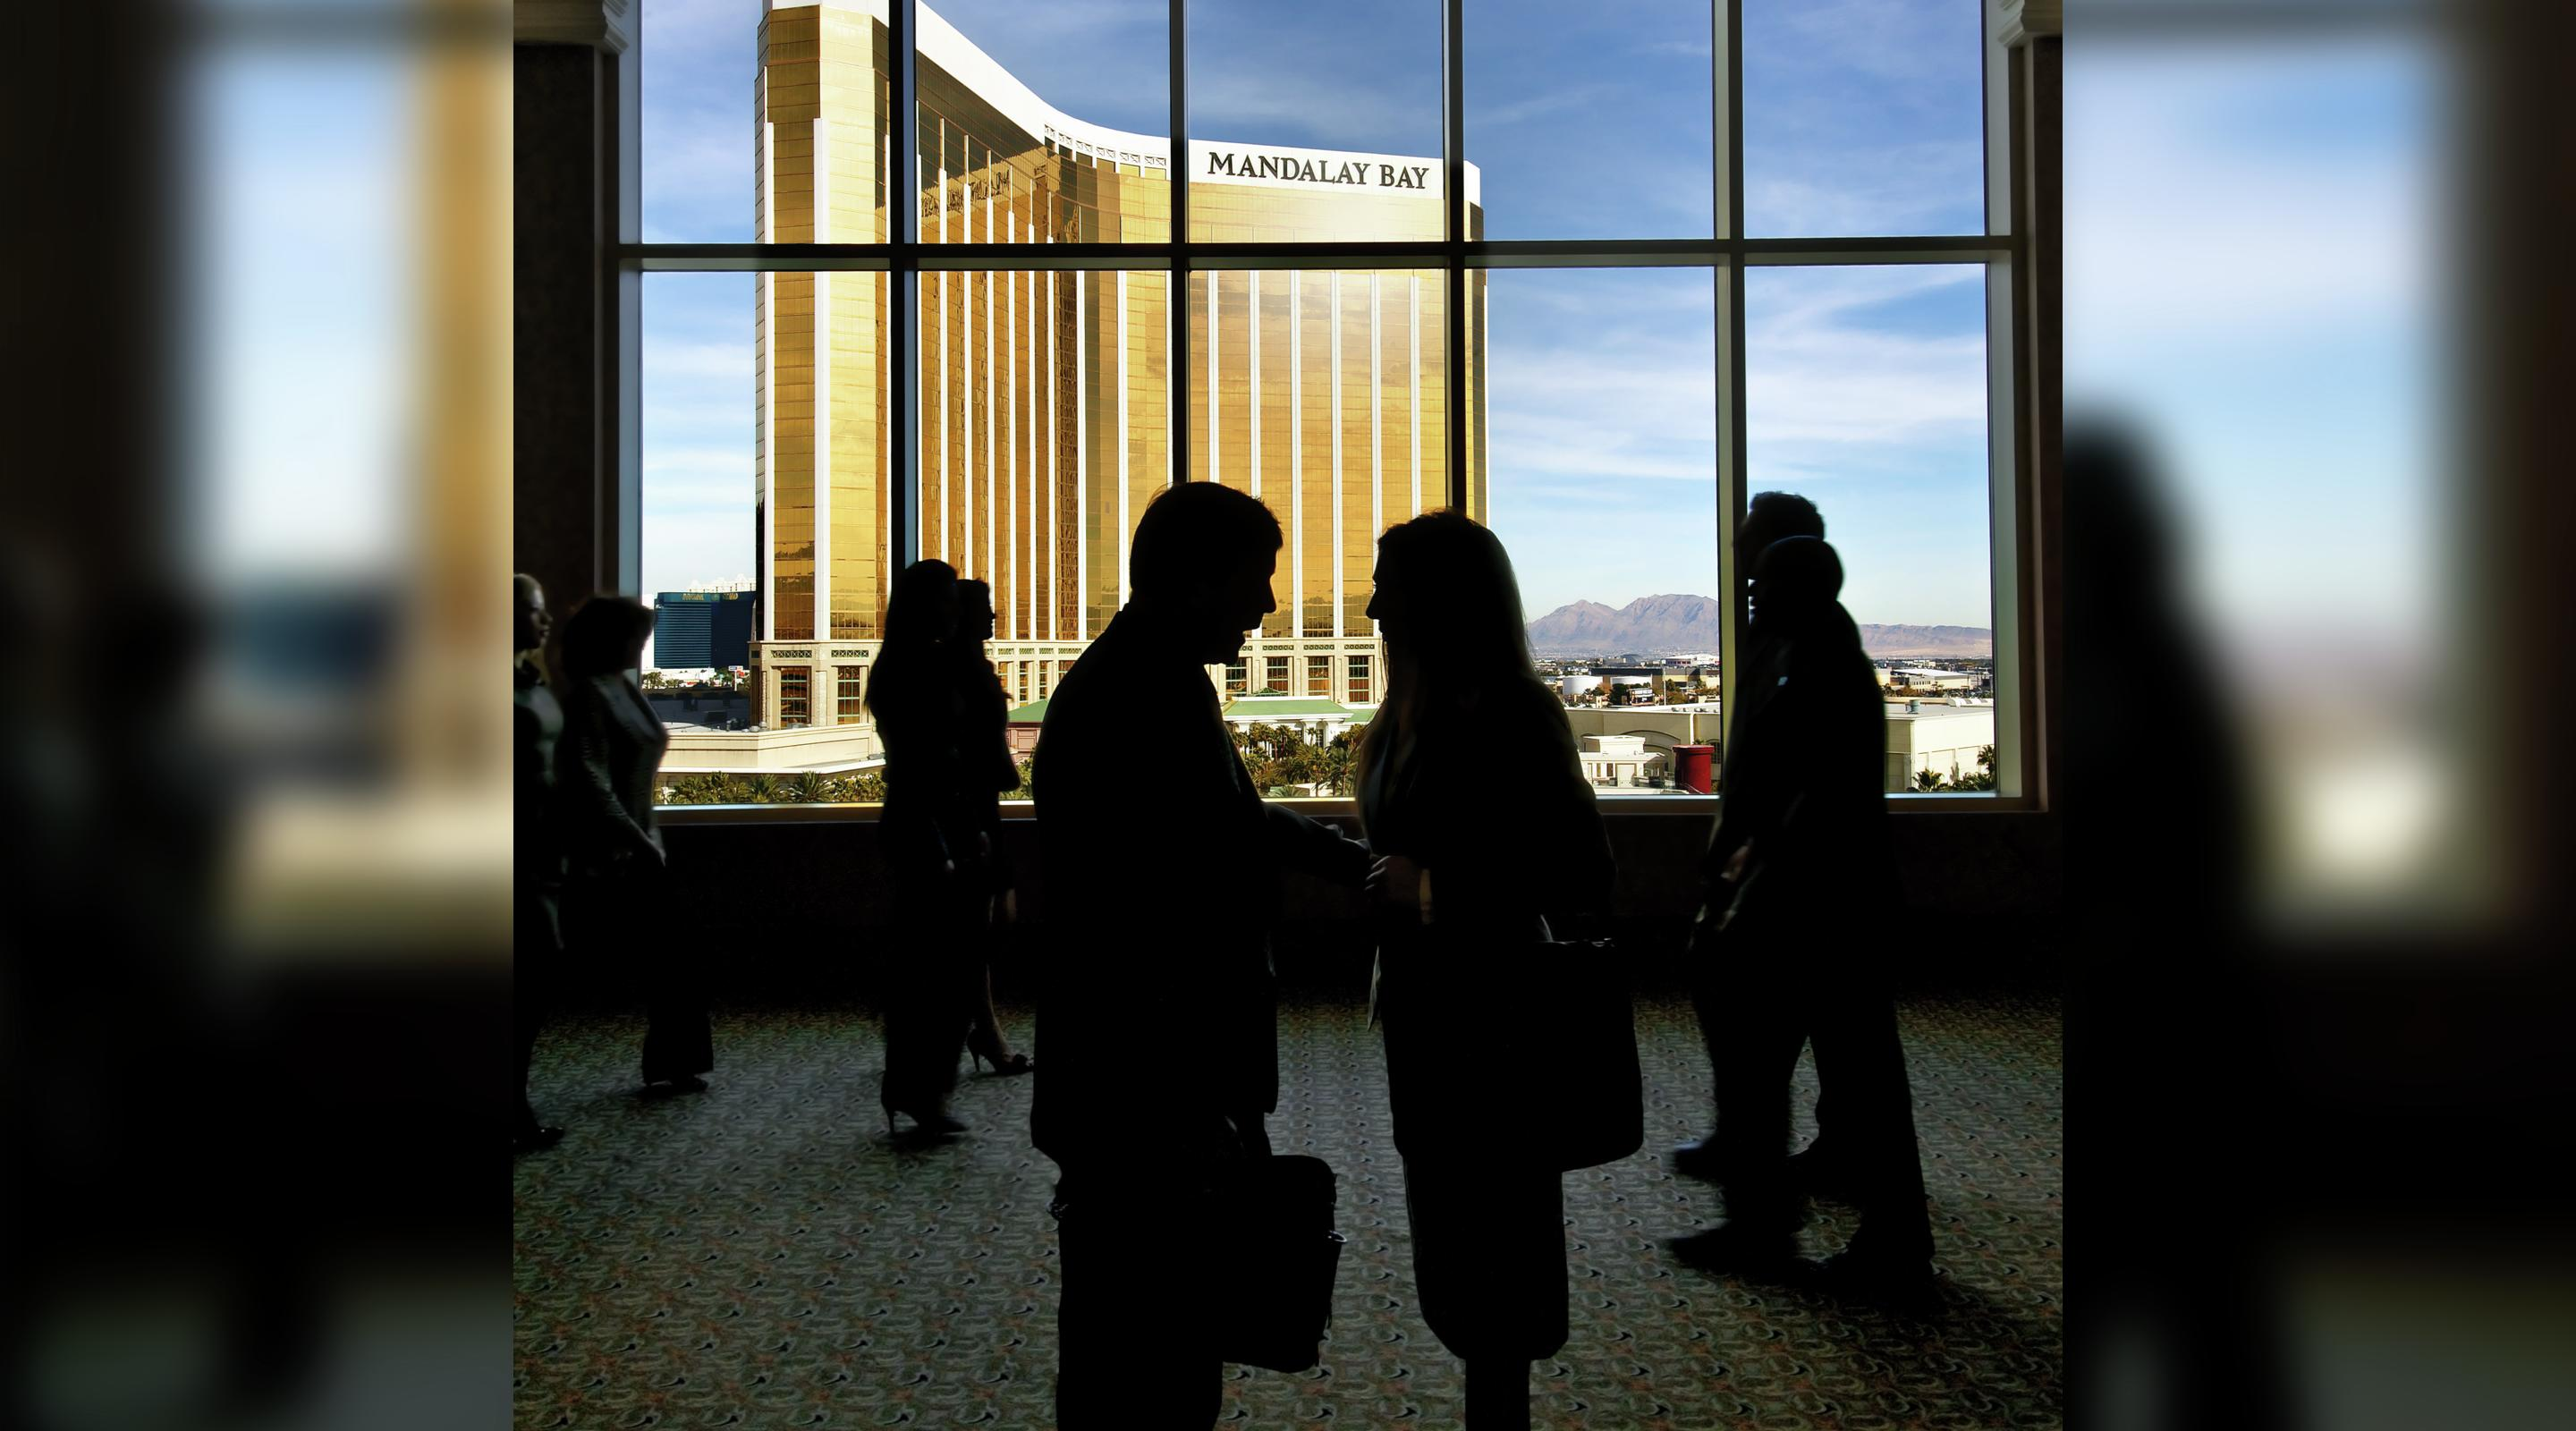 Mandalay Bay Two Bedroom Suite Event Setup Support Services Mandalay Bay